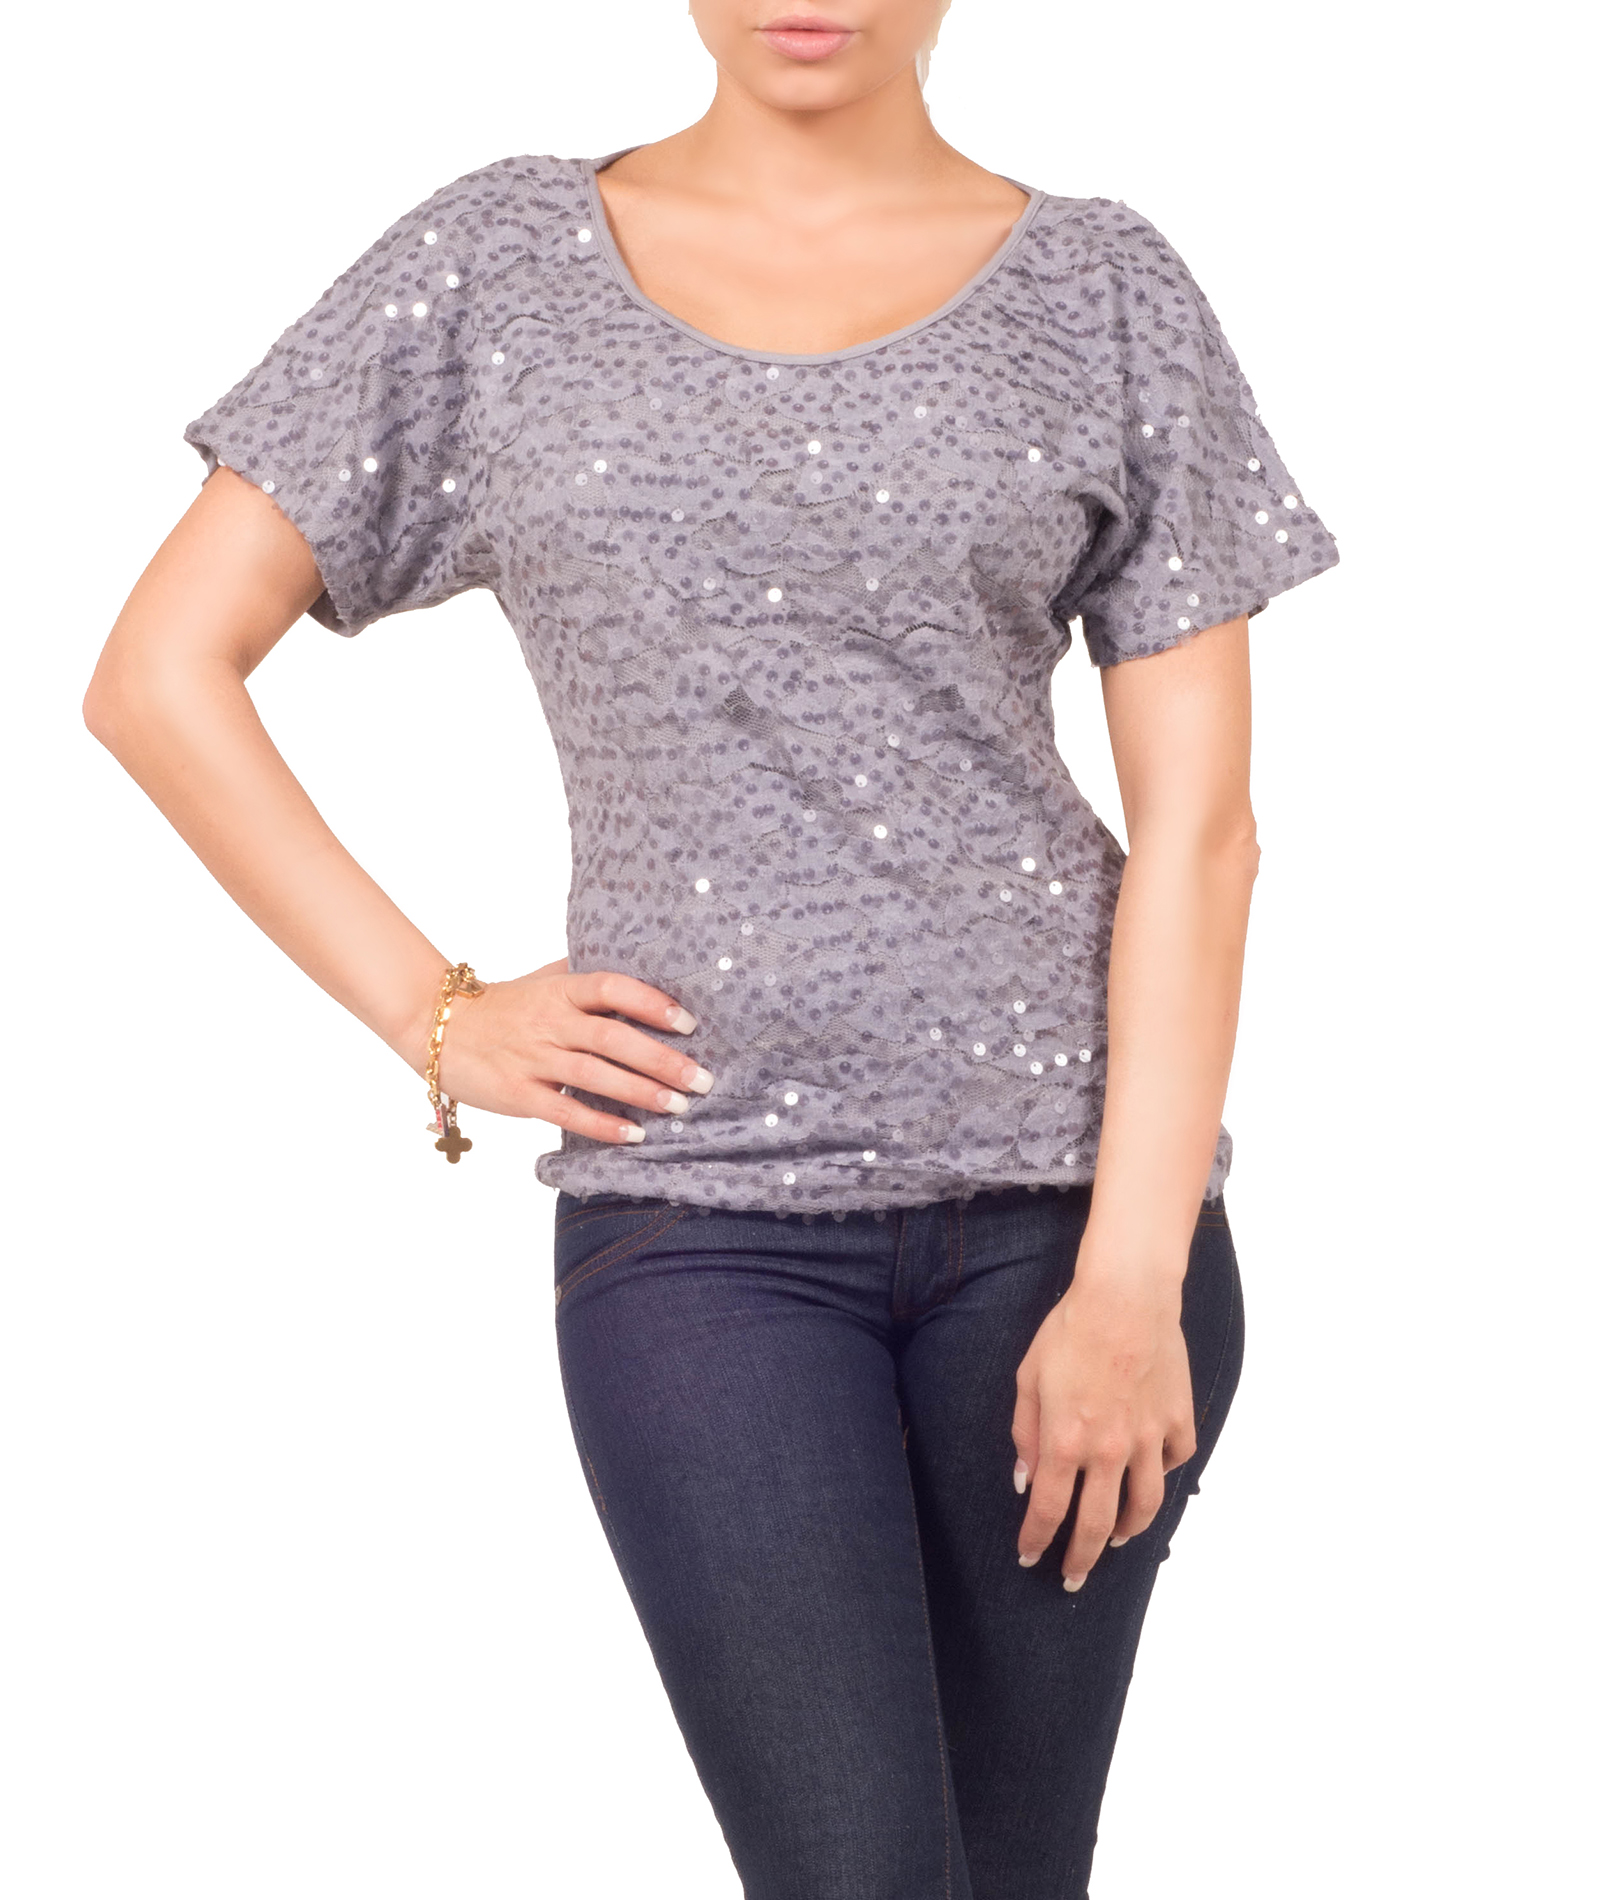 Hot From Hollywood Womens Fitted Jersey Sequin Mesh Scoop Neck Short Sleeve Formal Party Blouse Top at Sears.com